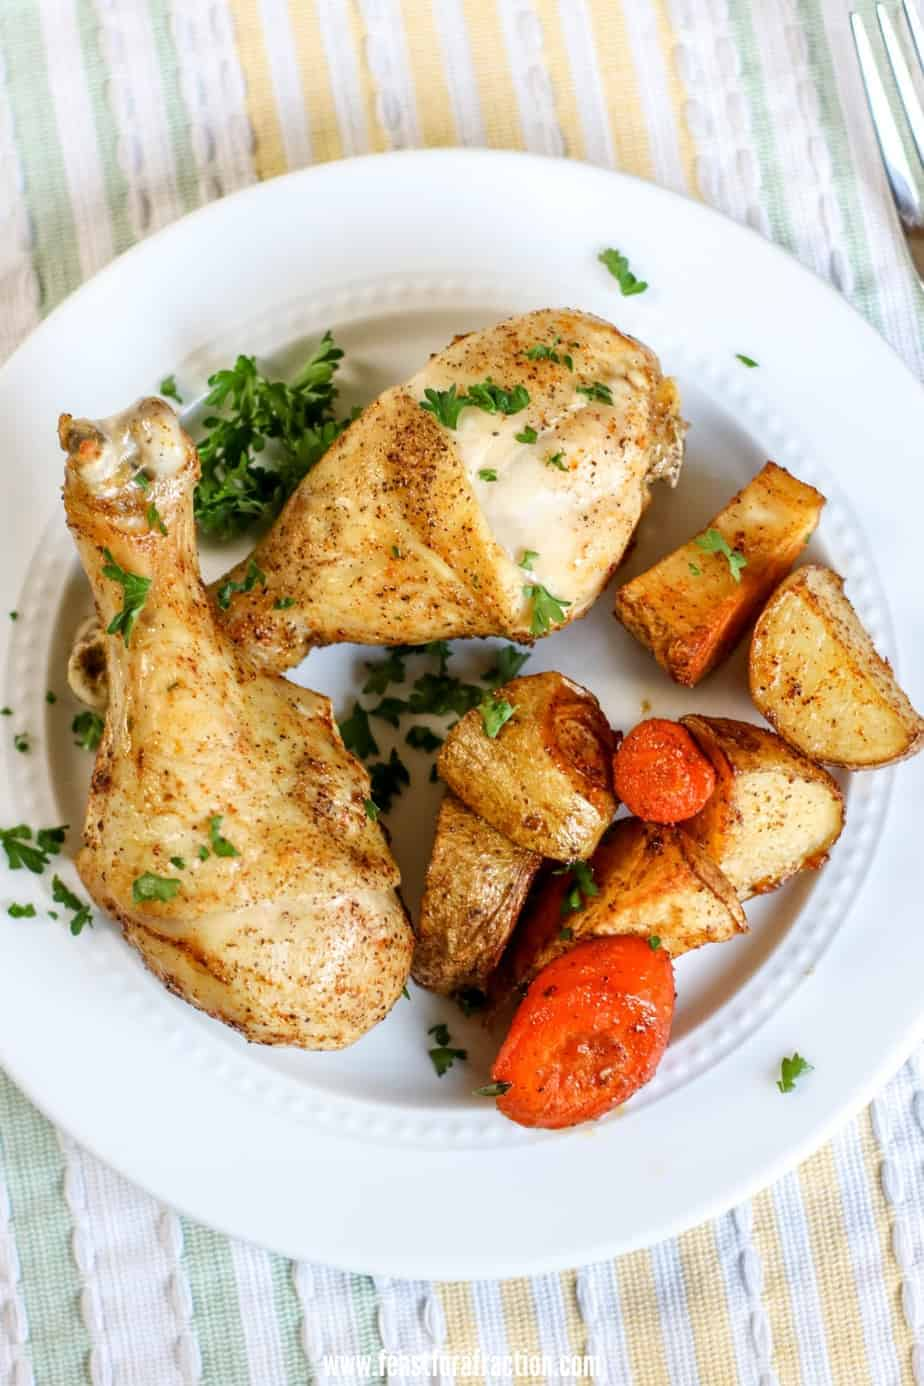 two chicken drumsticks and roasted carrots and potatoes on white plate with pastel tableclock